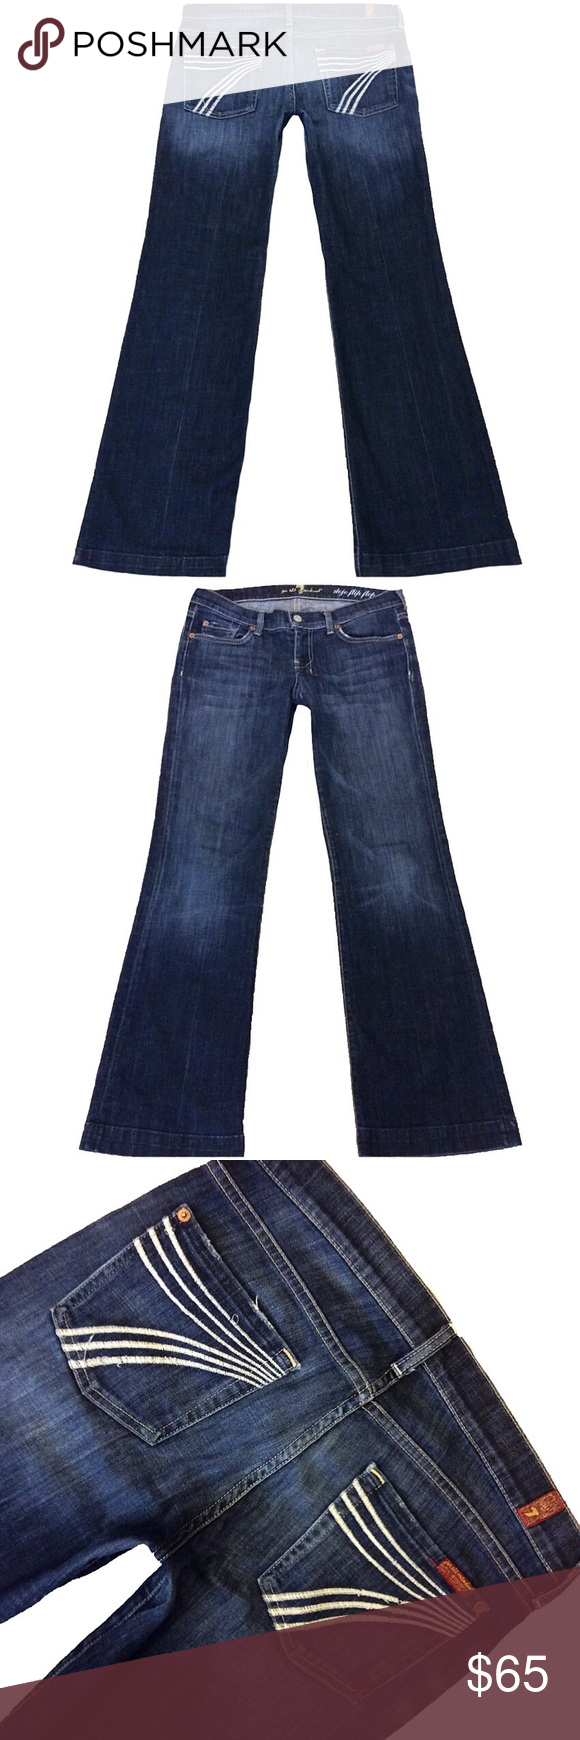 """7 For All Mankind """"Dojo Flip Flop"""" SZ 30 Inseam 31 (#1) A Super Cute Pair Of 7 For All Mankind """"Dojo Flip Flop"""" Women's SZ 30 Flare/Wide Leg Dark Blue Wash With White Stitched 7 Mid-Rise Stretch Jeans. Has a small patch by crotch area that has been repaired. See pic Style# U115FF380S-380S Cut# 720439 Measurements: Waist: 32"""" Hips: 39"""" Front rise: 8.25"""" Back rise: 13"""" Inseam: 31"""" 7 For All Mankind Jeans Flare & Wide Leg"""